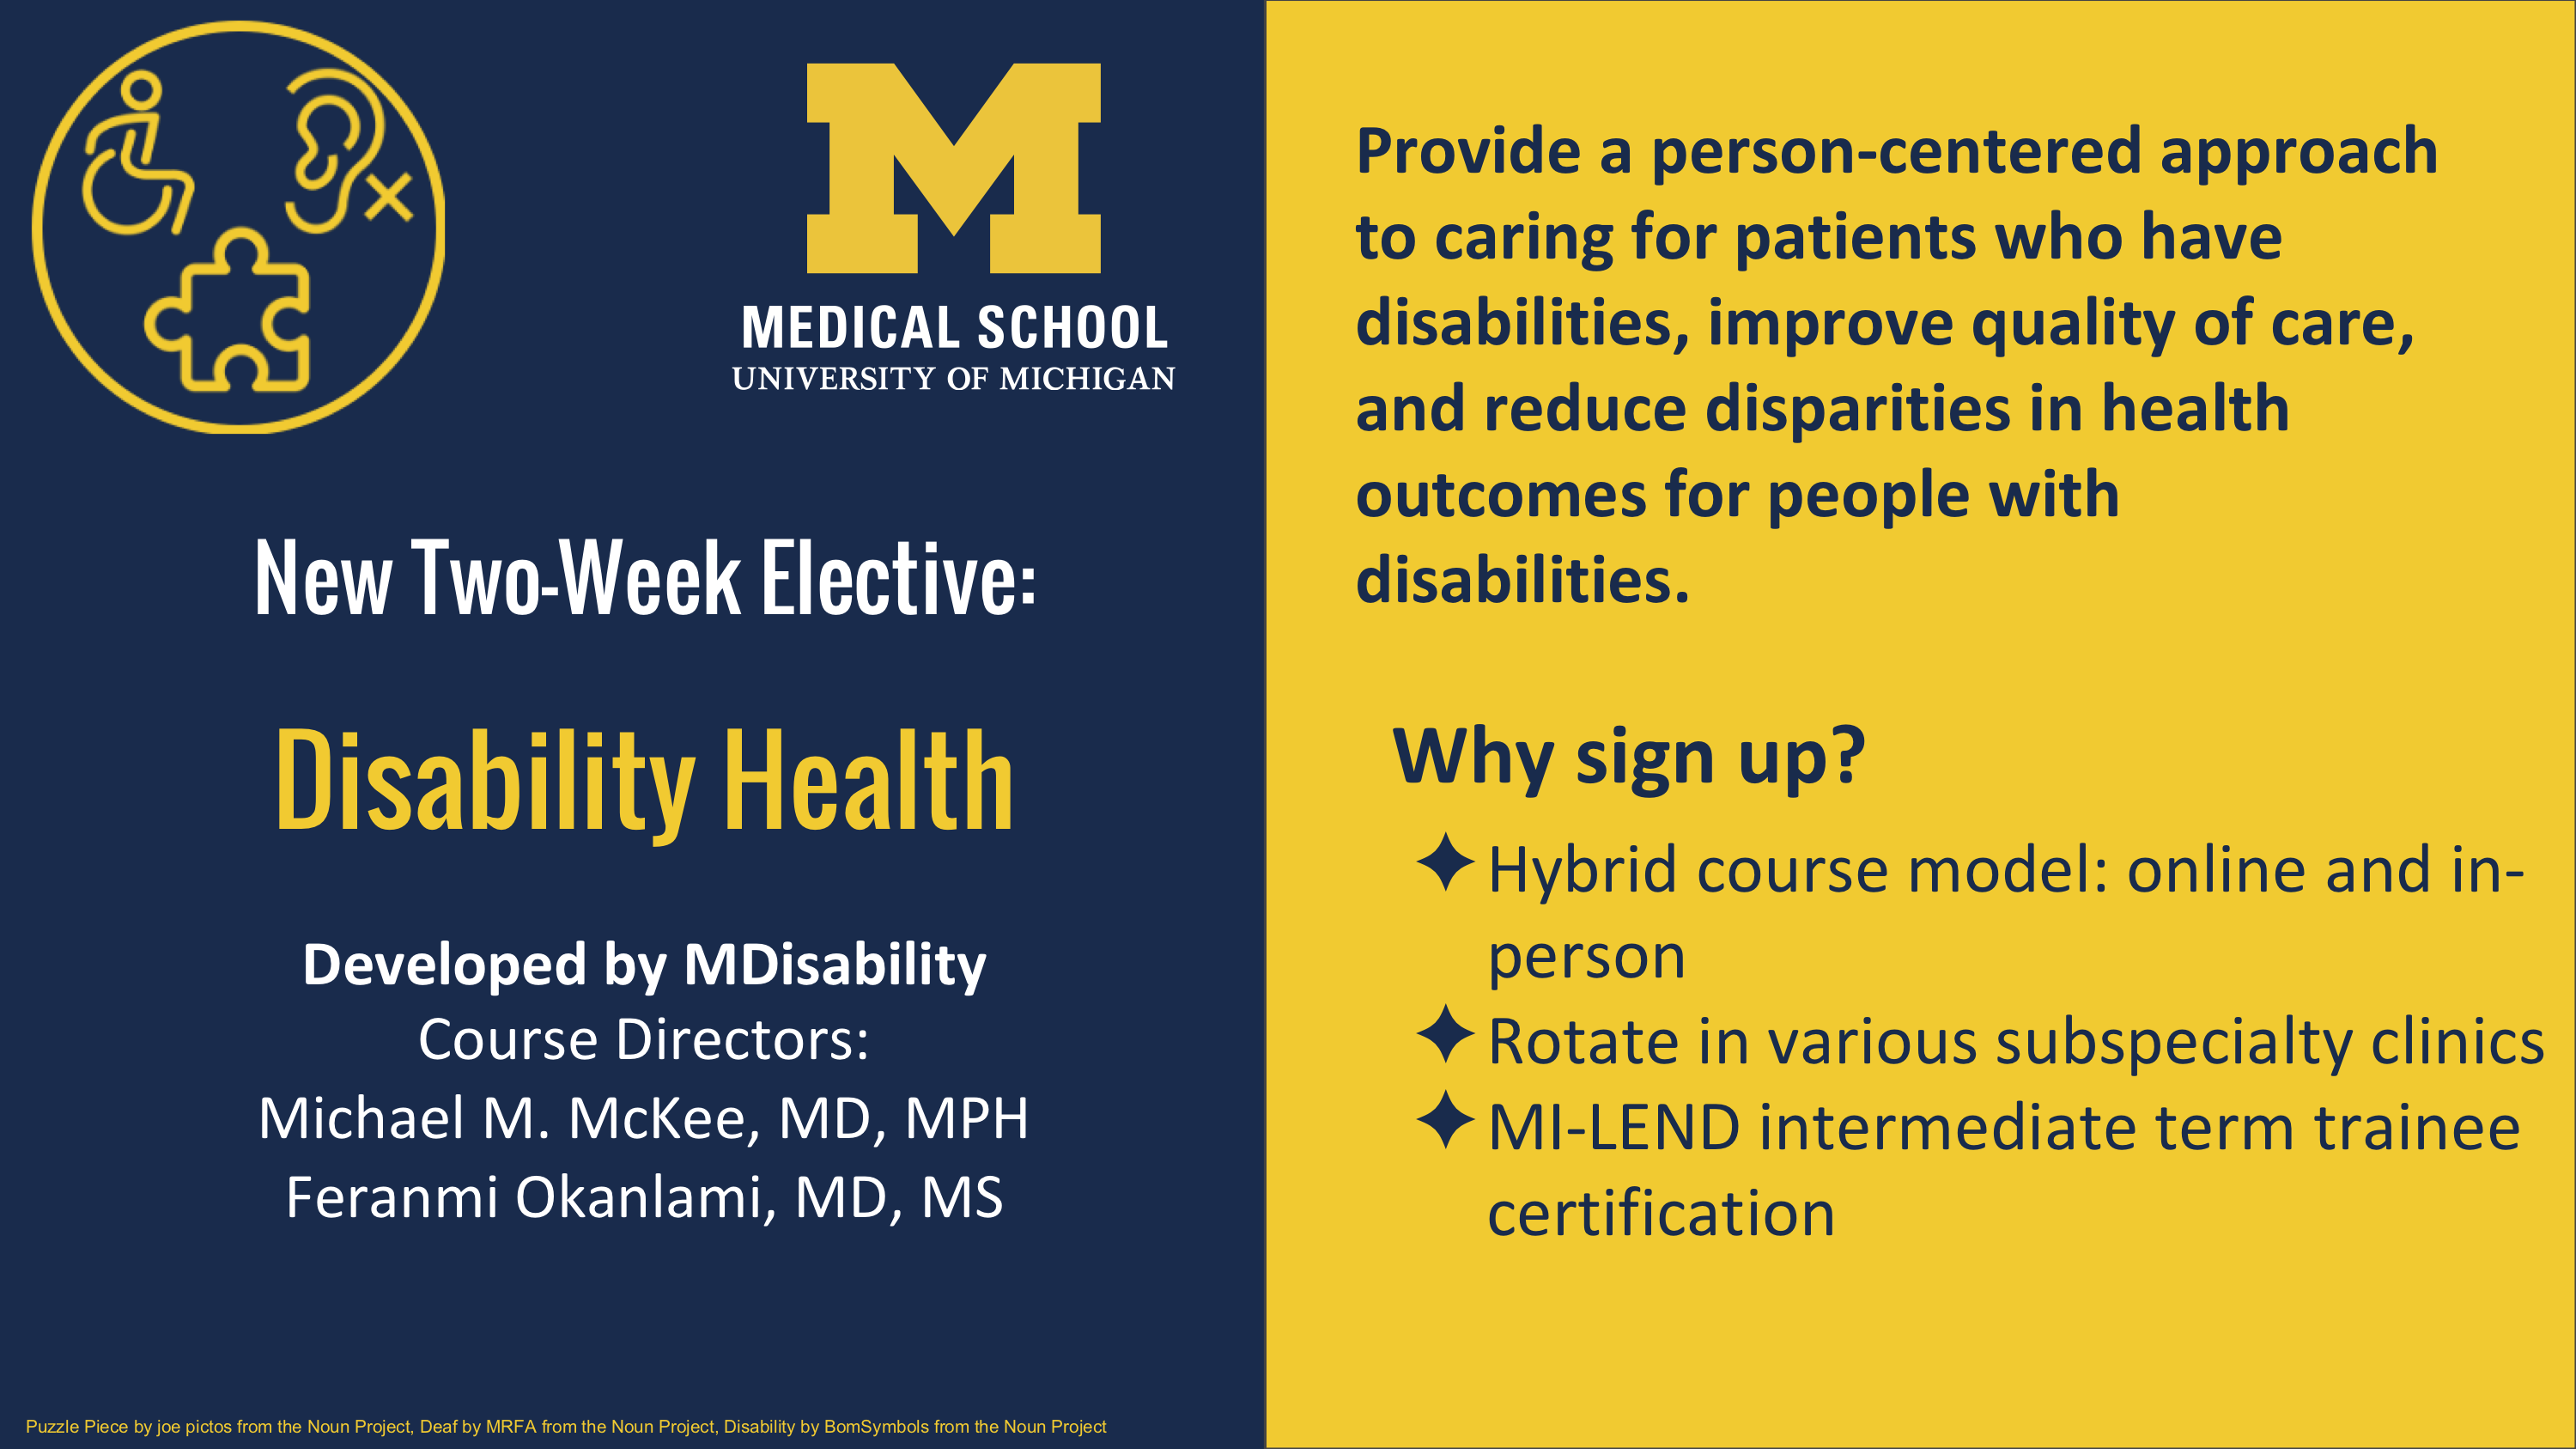 New Two-Week Elective: Disability Health. Developed by MDisability Course Directors Michael M. McKee MD MPH, Feranmi Okanlami, Provide a person-centered approach to caring for patients who have disabilities, improve quality of care, and reduce disparities